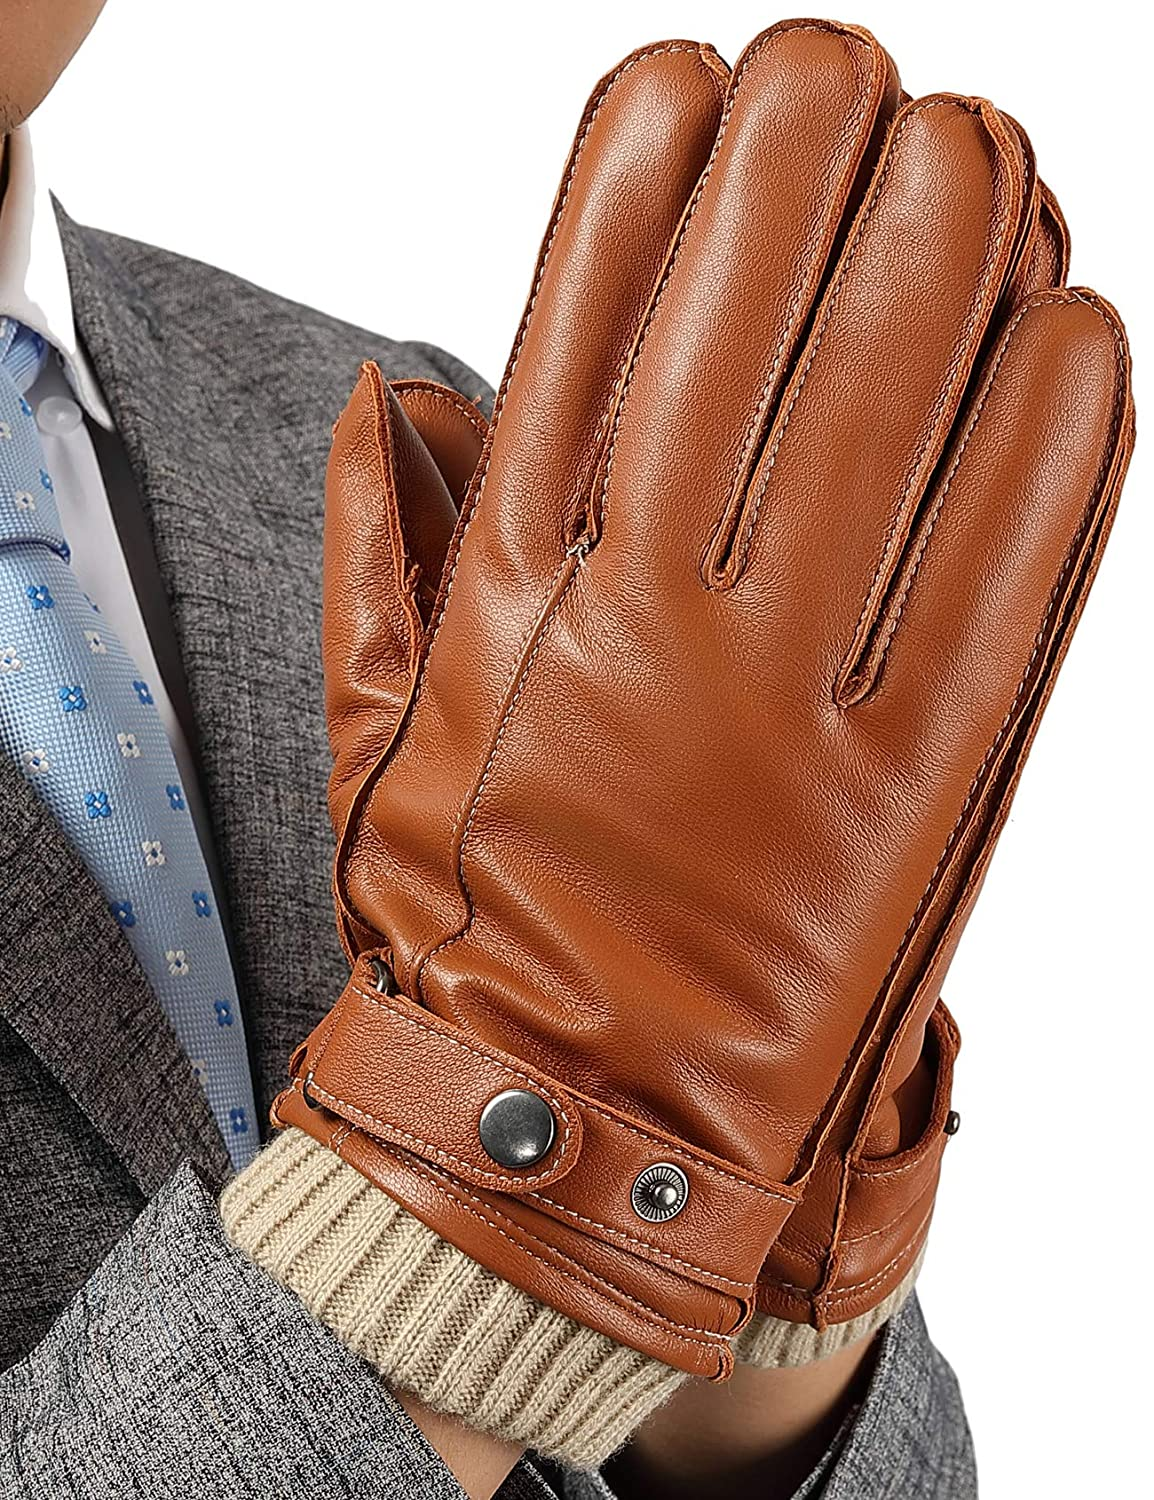 Leather Touchscreen Gloves for Men M Gifts Boxes Driving Textinng Winter Cold Weather Brown Gloves